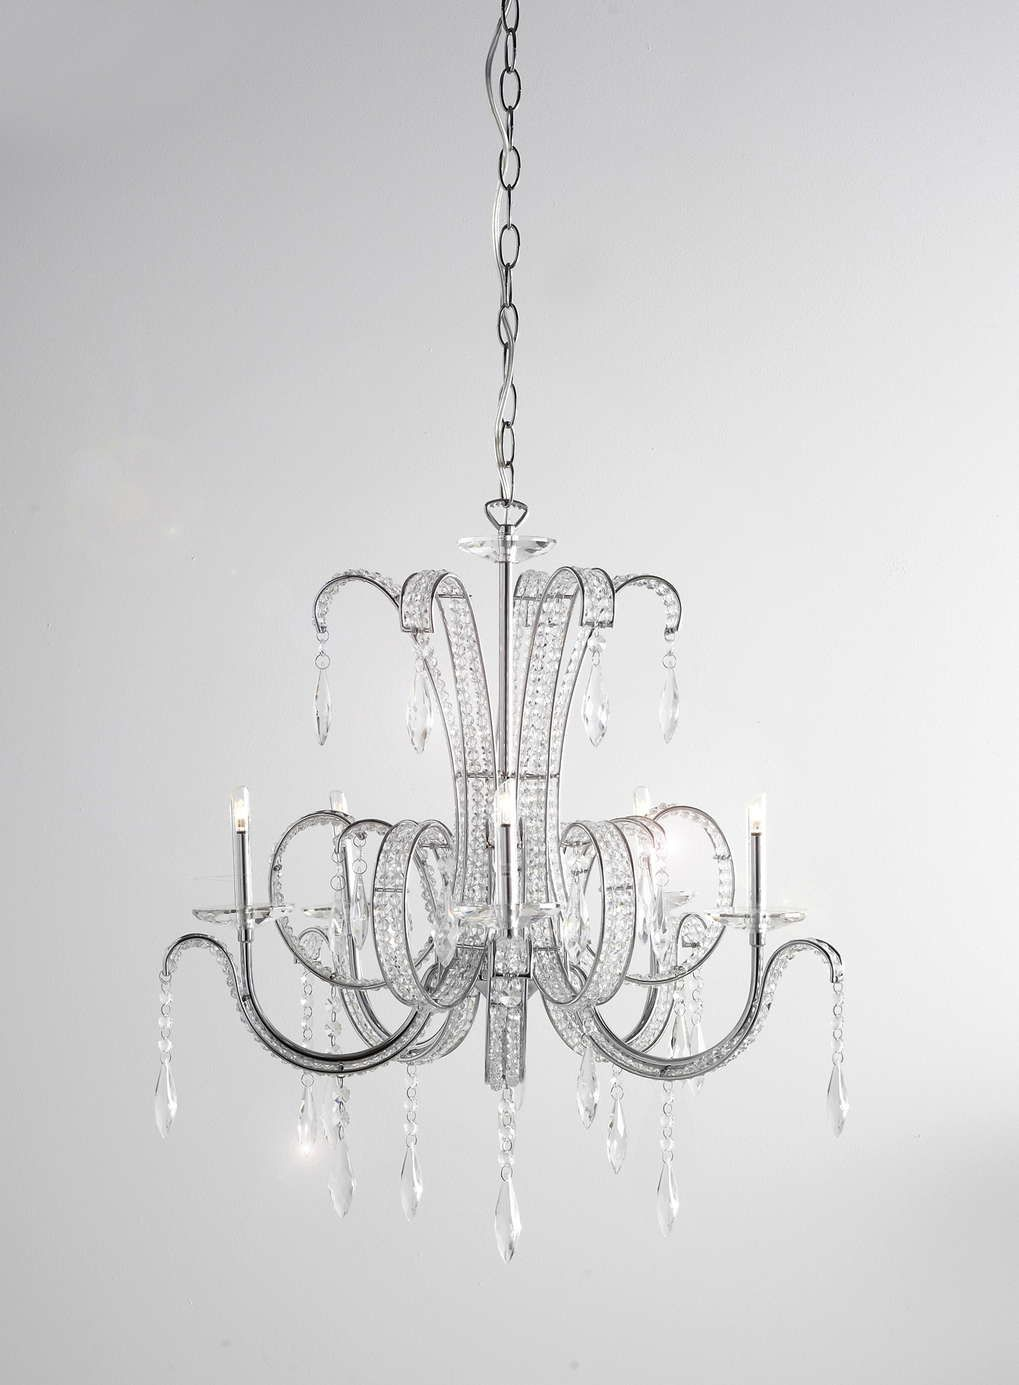 Bathroom Chandeliers Bhs clear ambrin 5 light chandelier - bhs | lighting | pinterest | bhs